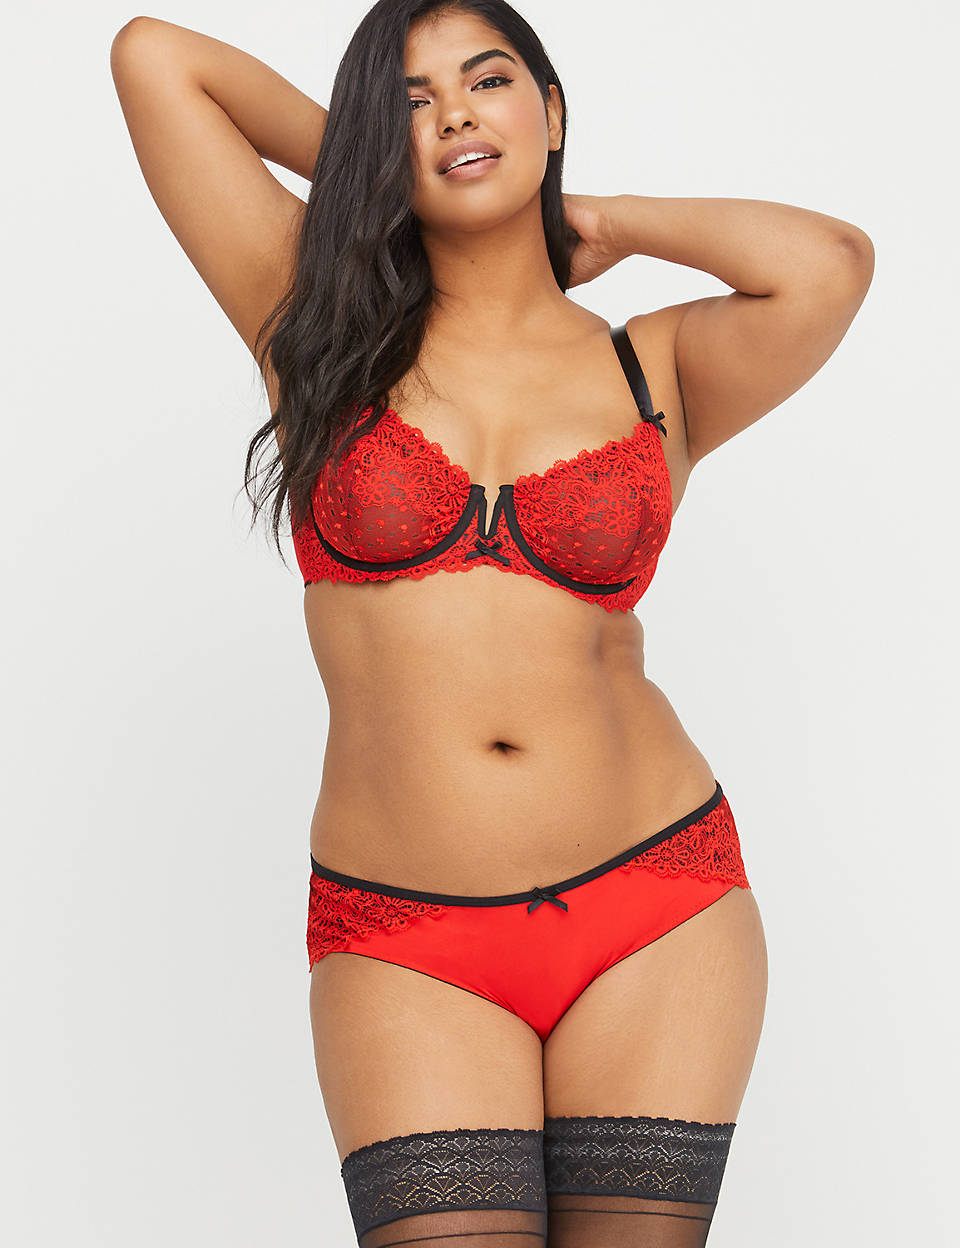 ac5fa5e7c Red Lingerie Shopping Guide For Valentines Day   Beyond